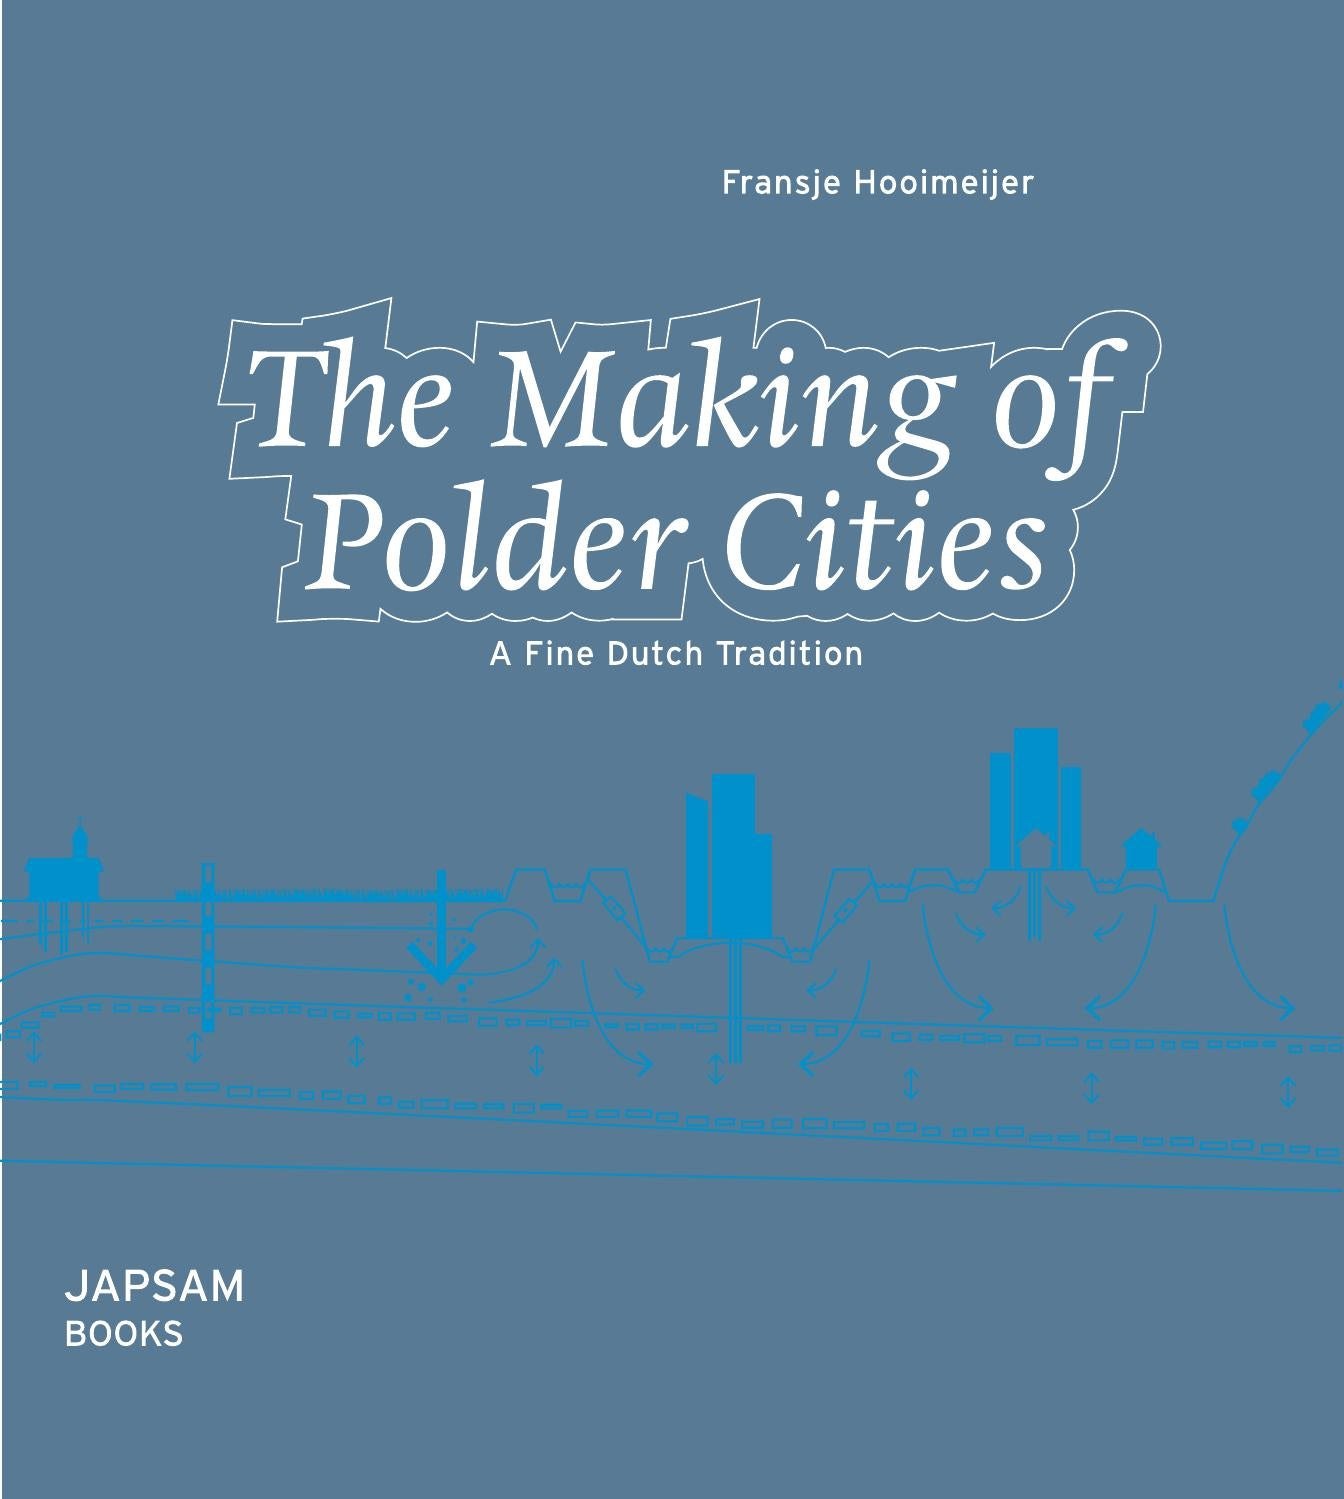 The Making of Polder Cities - A Fine Dutch Tradition